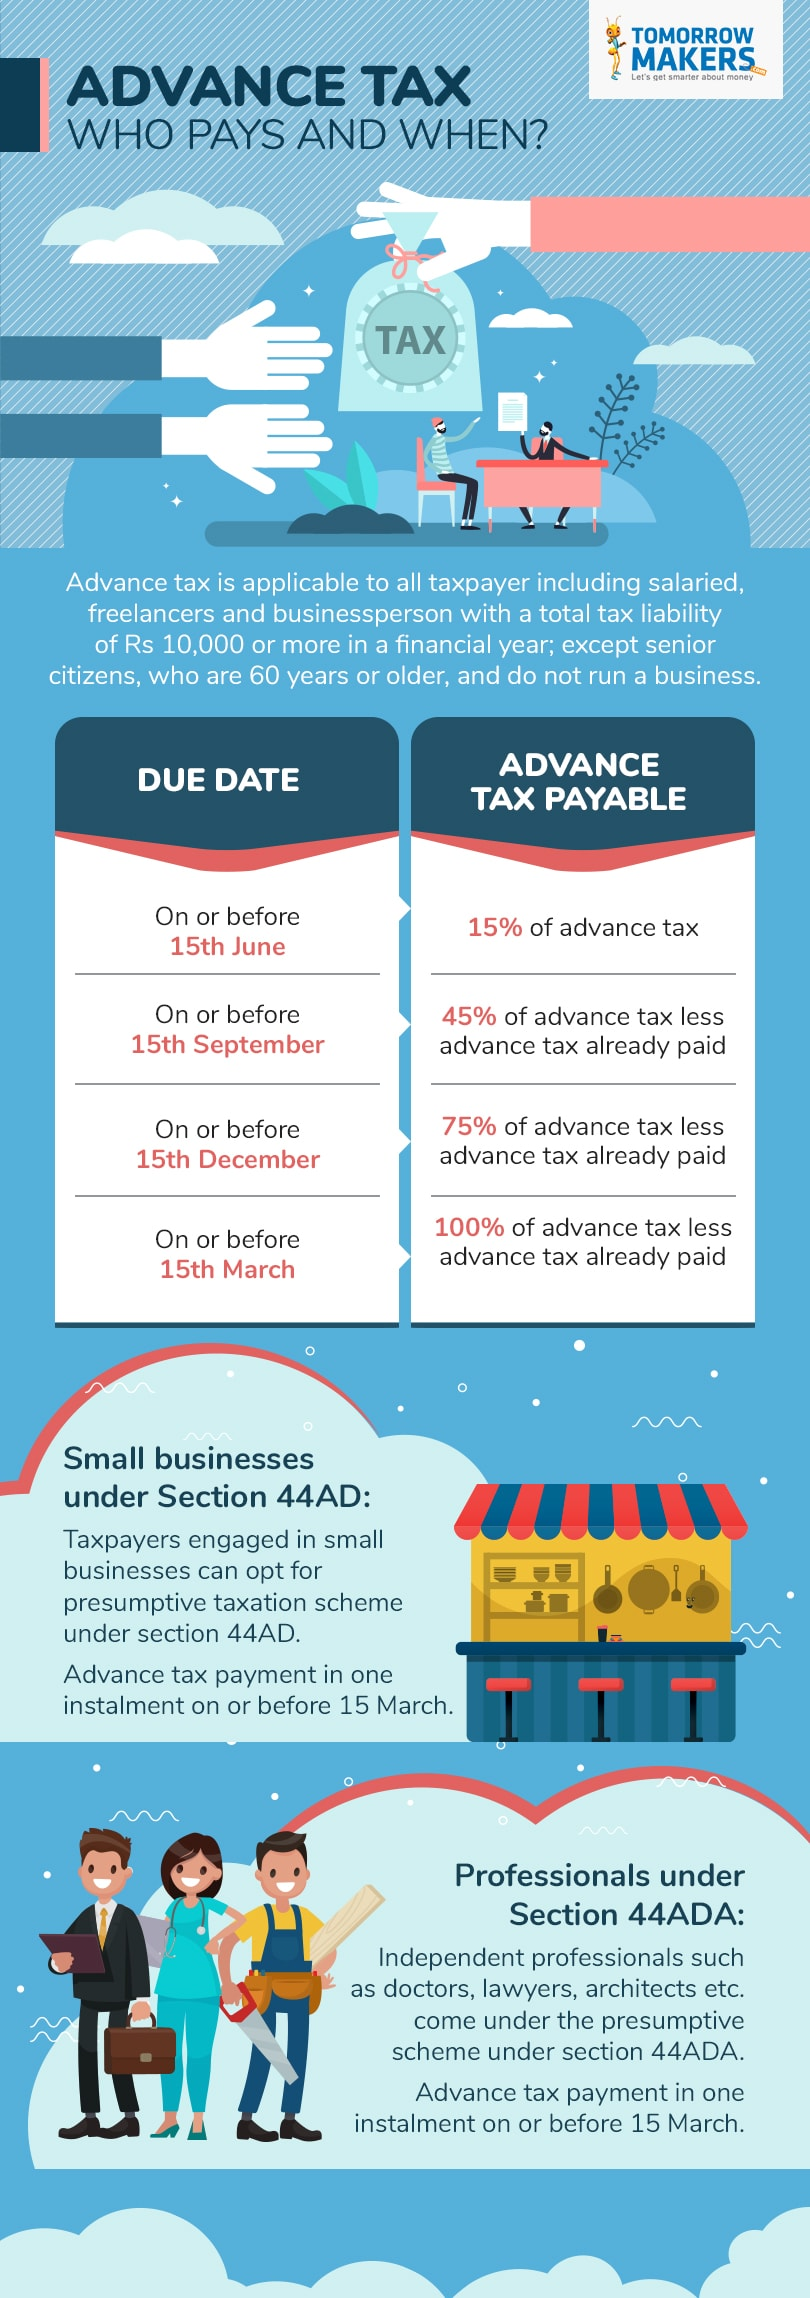 Advance Tax – Who Pays and When?